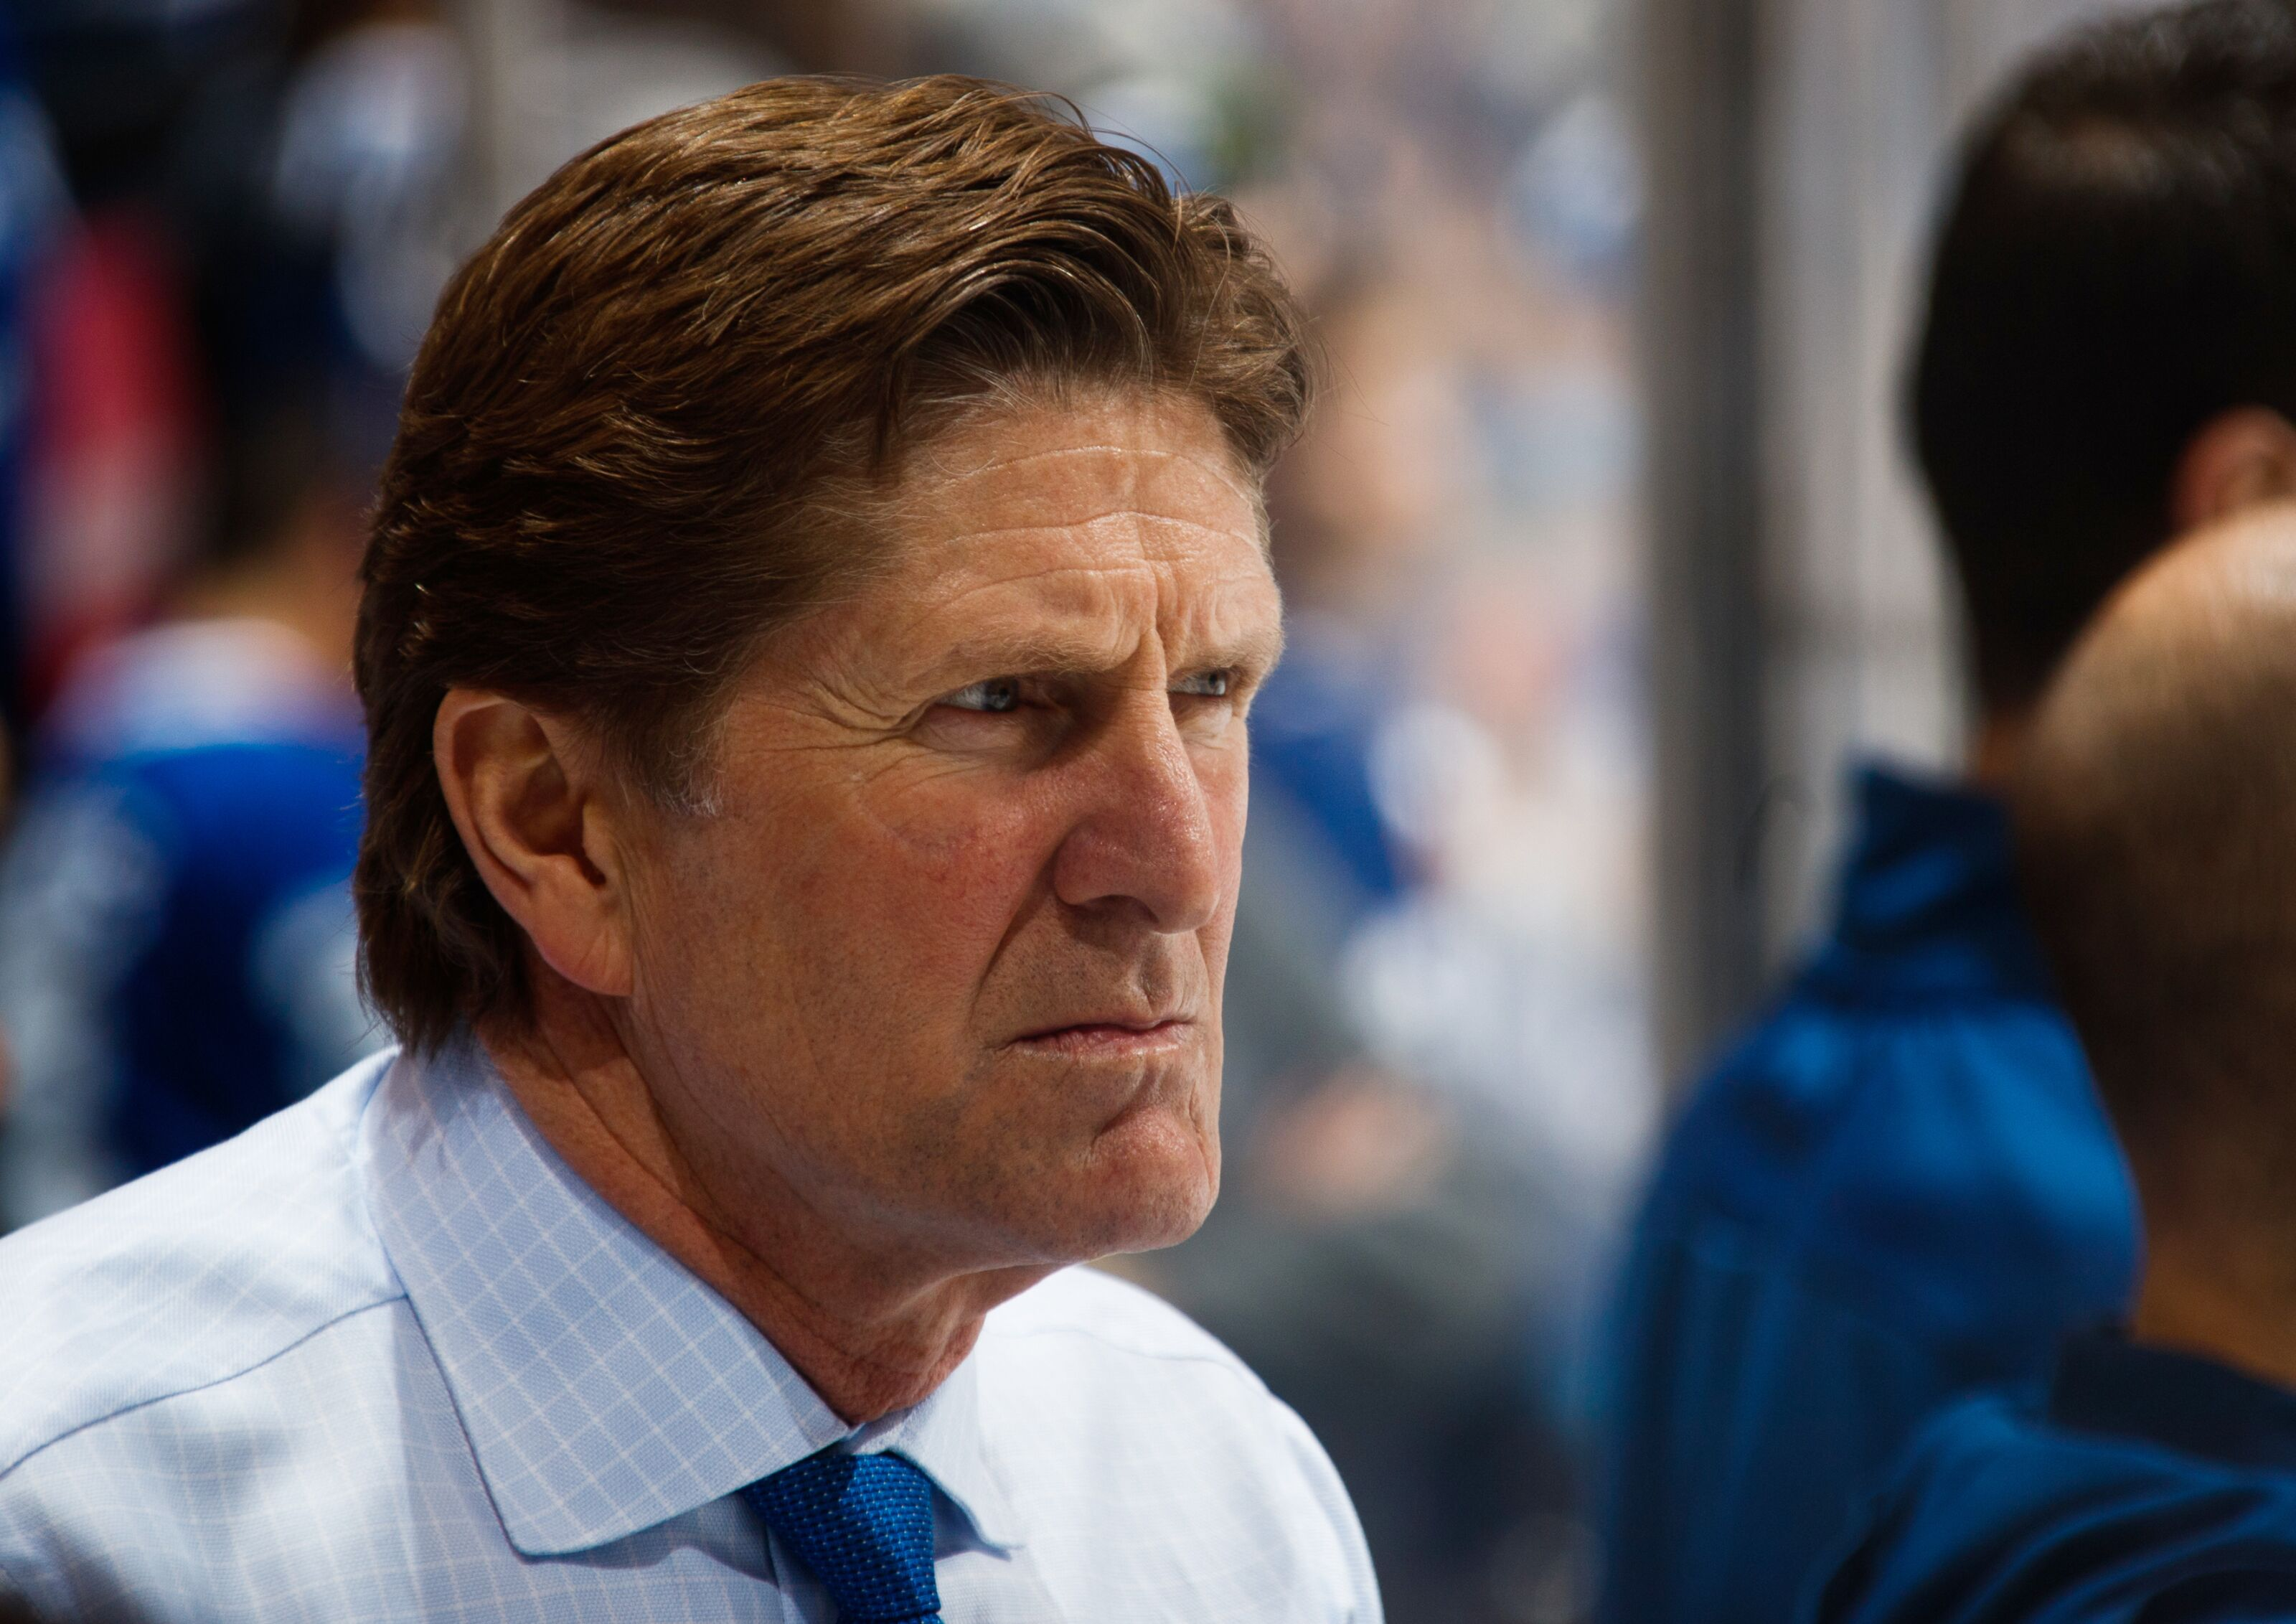 Toronto Maple Leafs: Mike Babcock Hasn't Changed